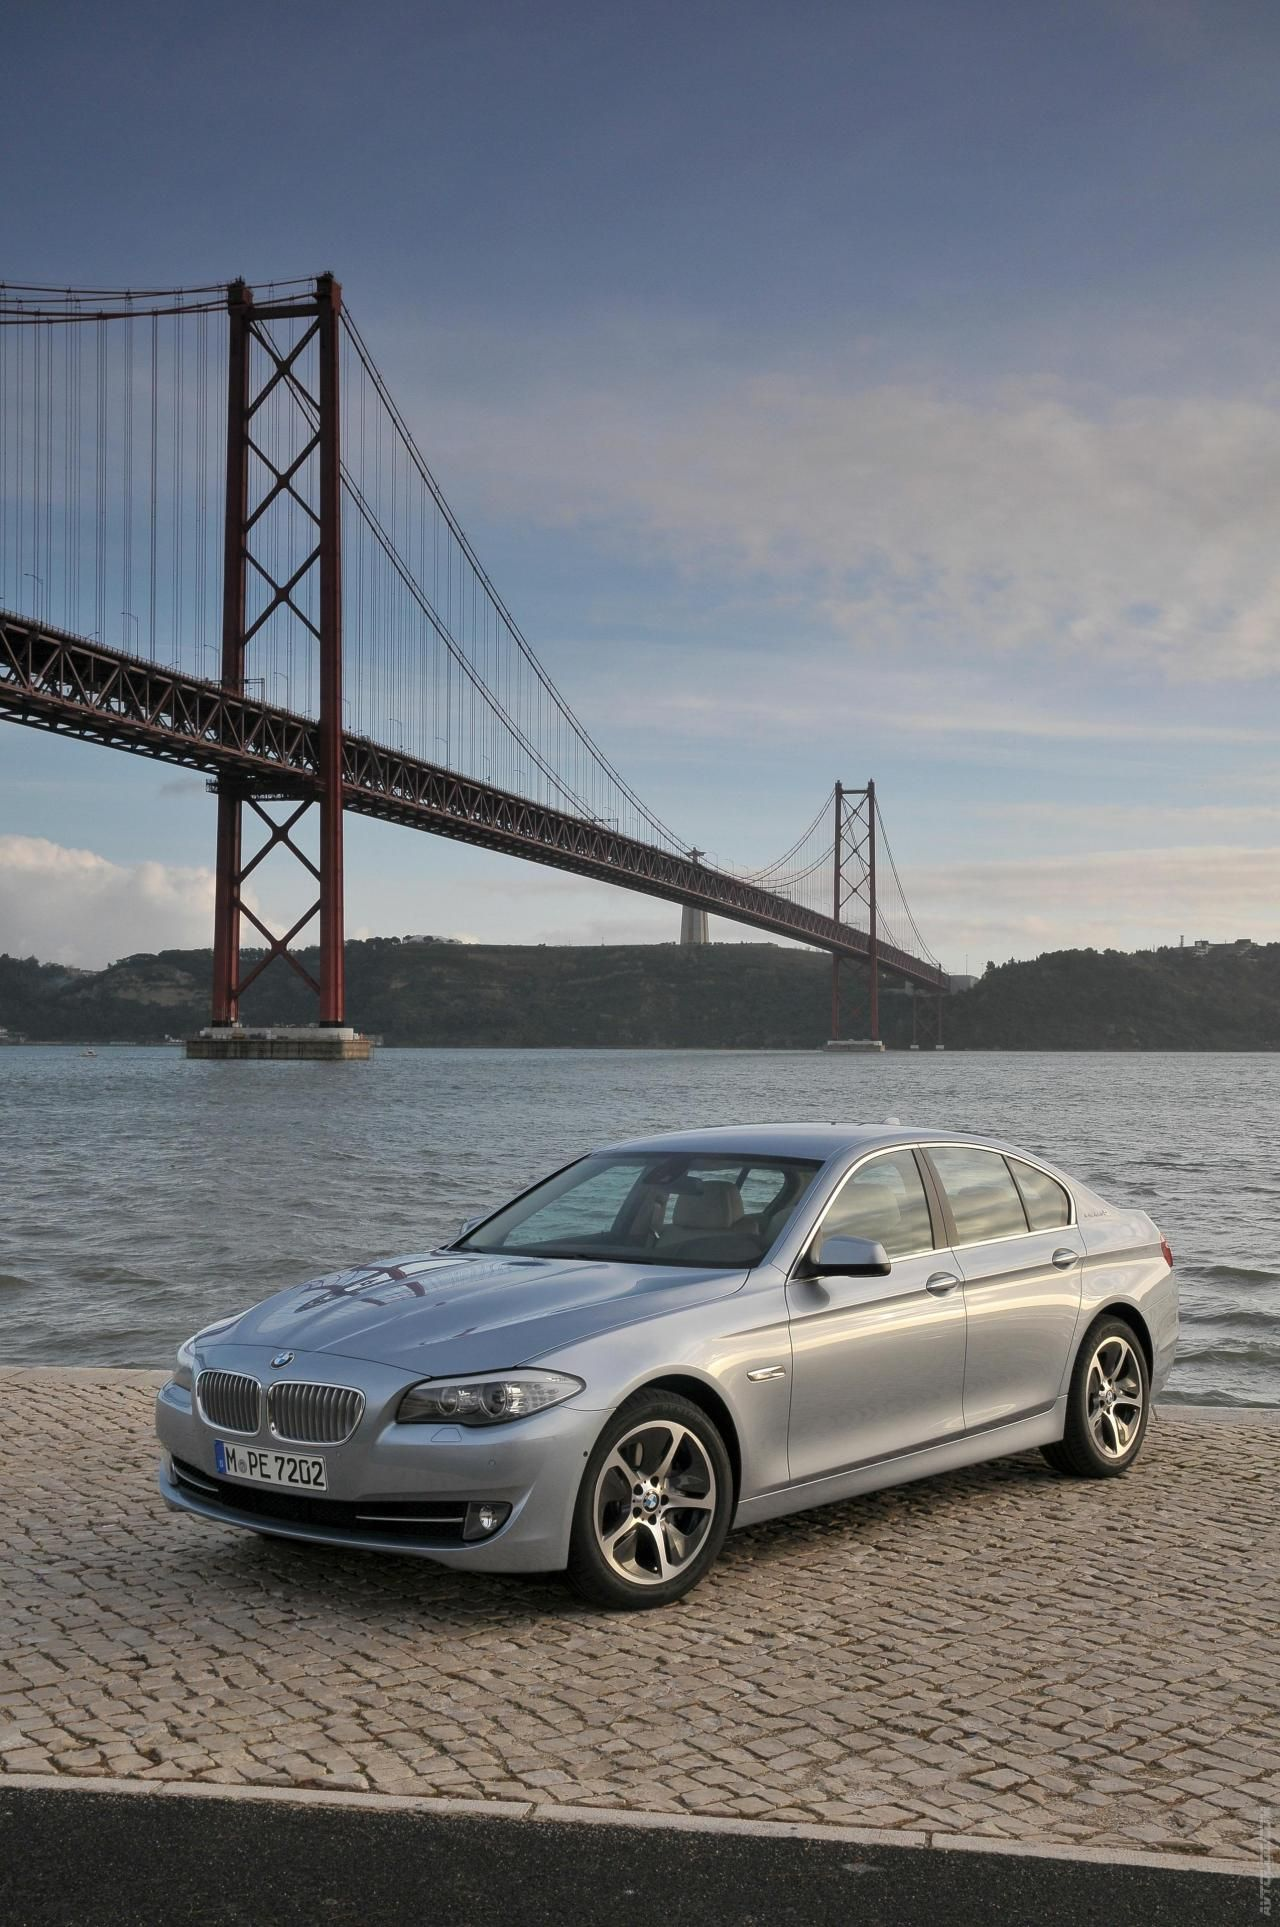 2013 BMW 5 ActiveHybrid | auto moodboard | Pinterest | BMW, Cars and ...